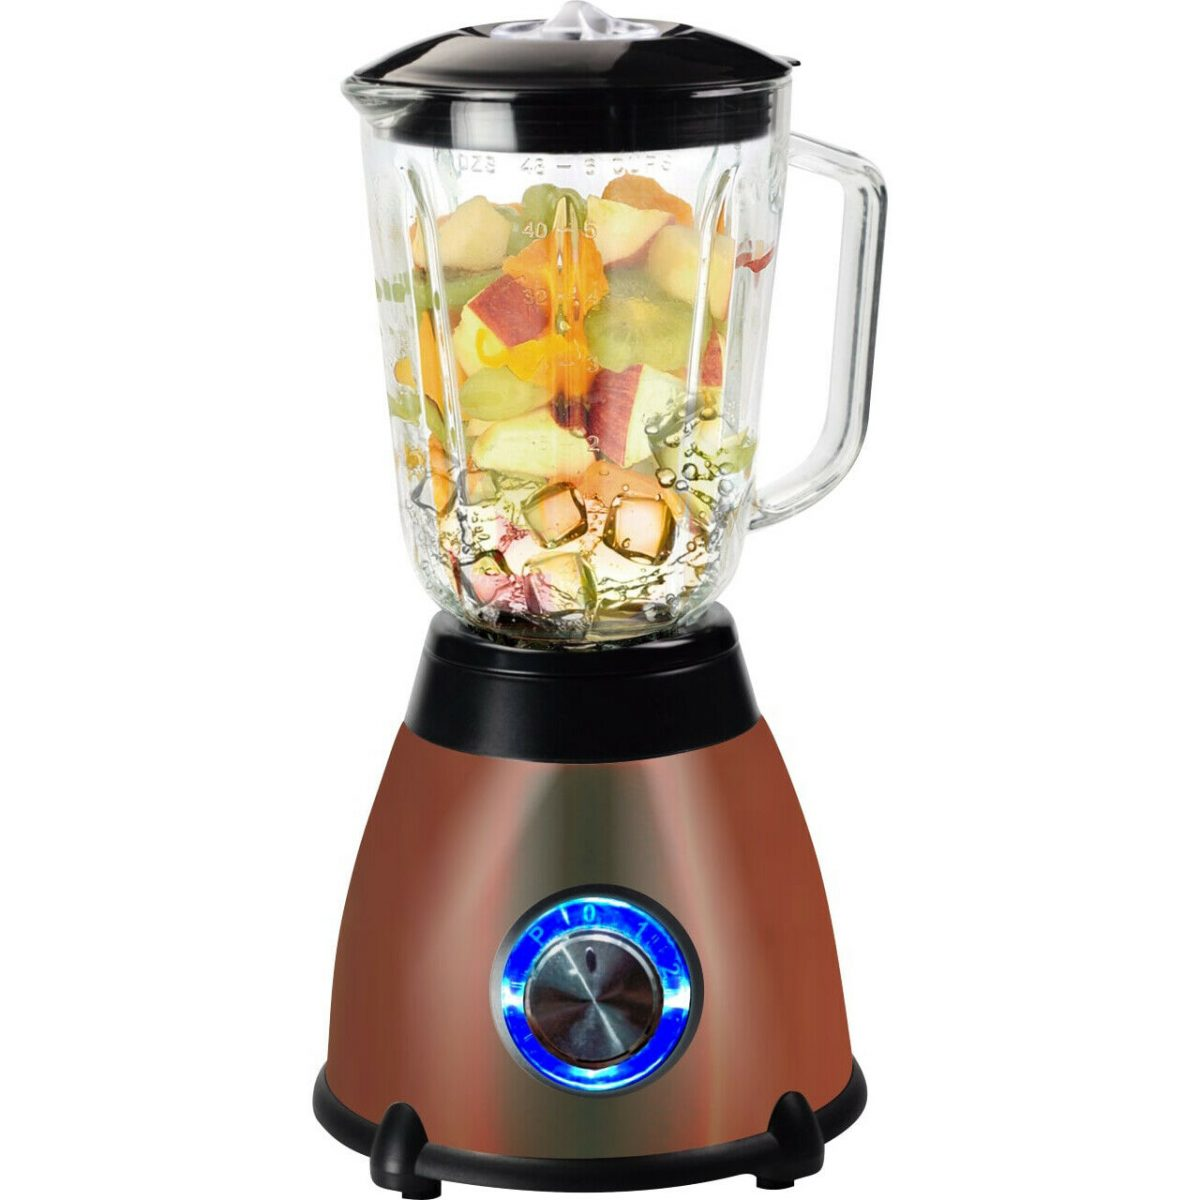 Kitchen Genie Glass Table Top Blender With Grinder 500W 1.5 Litre Copper